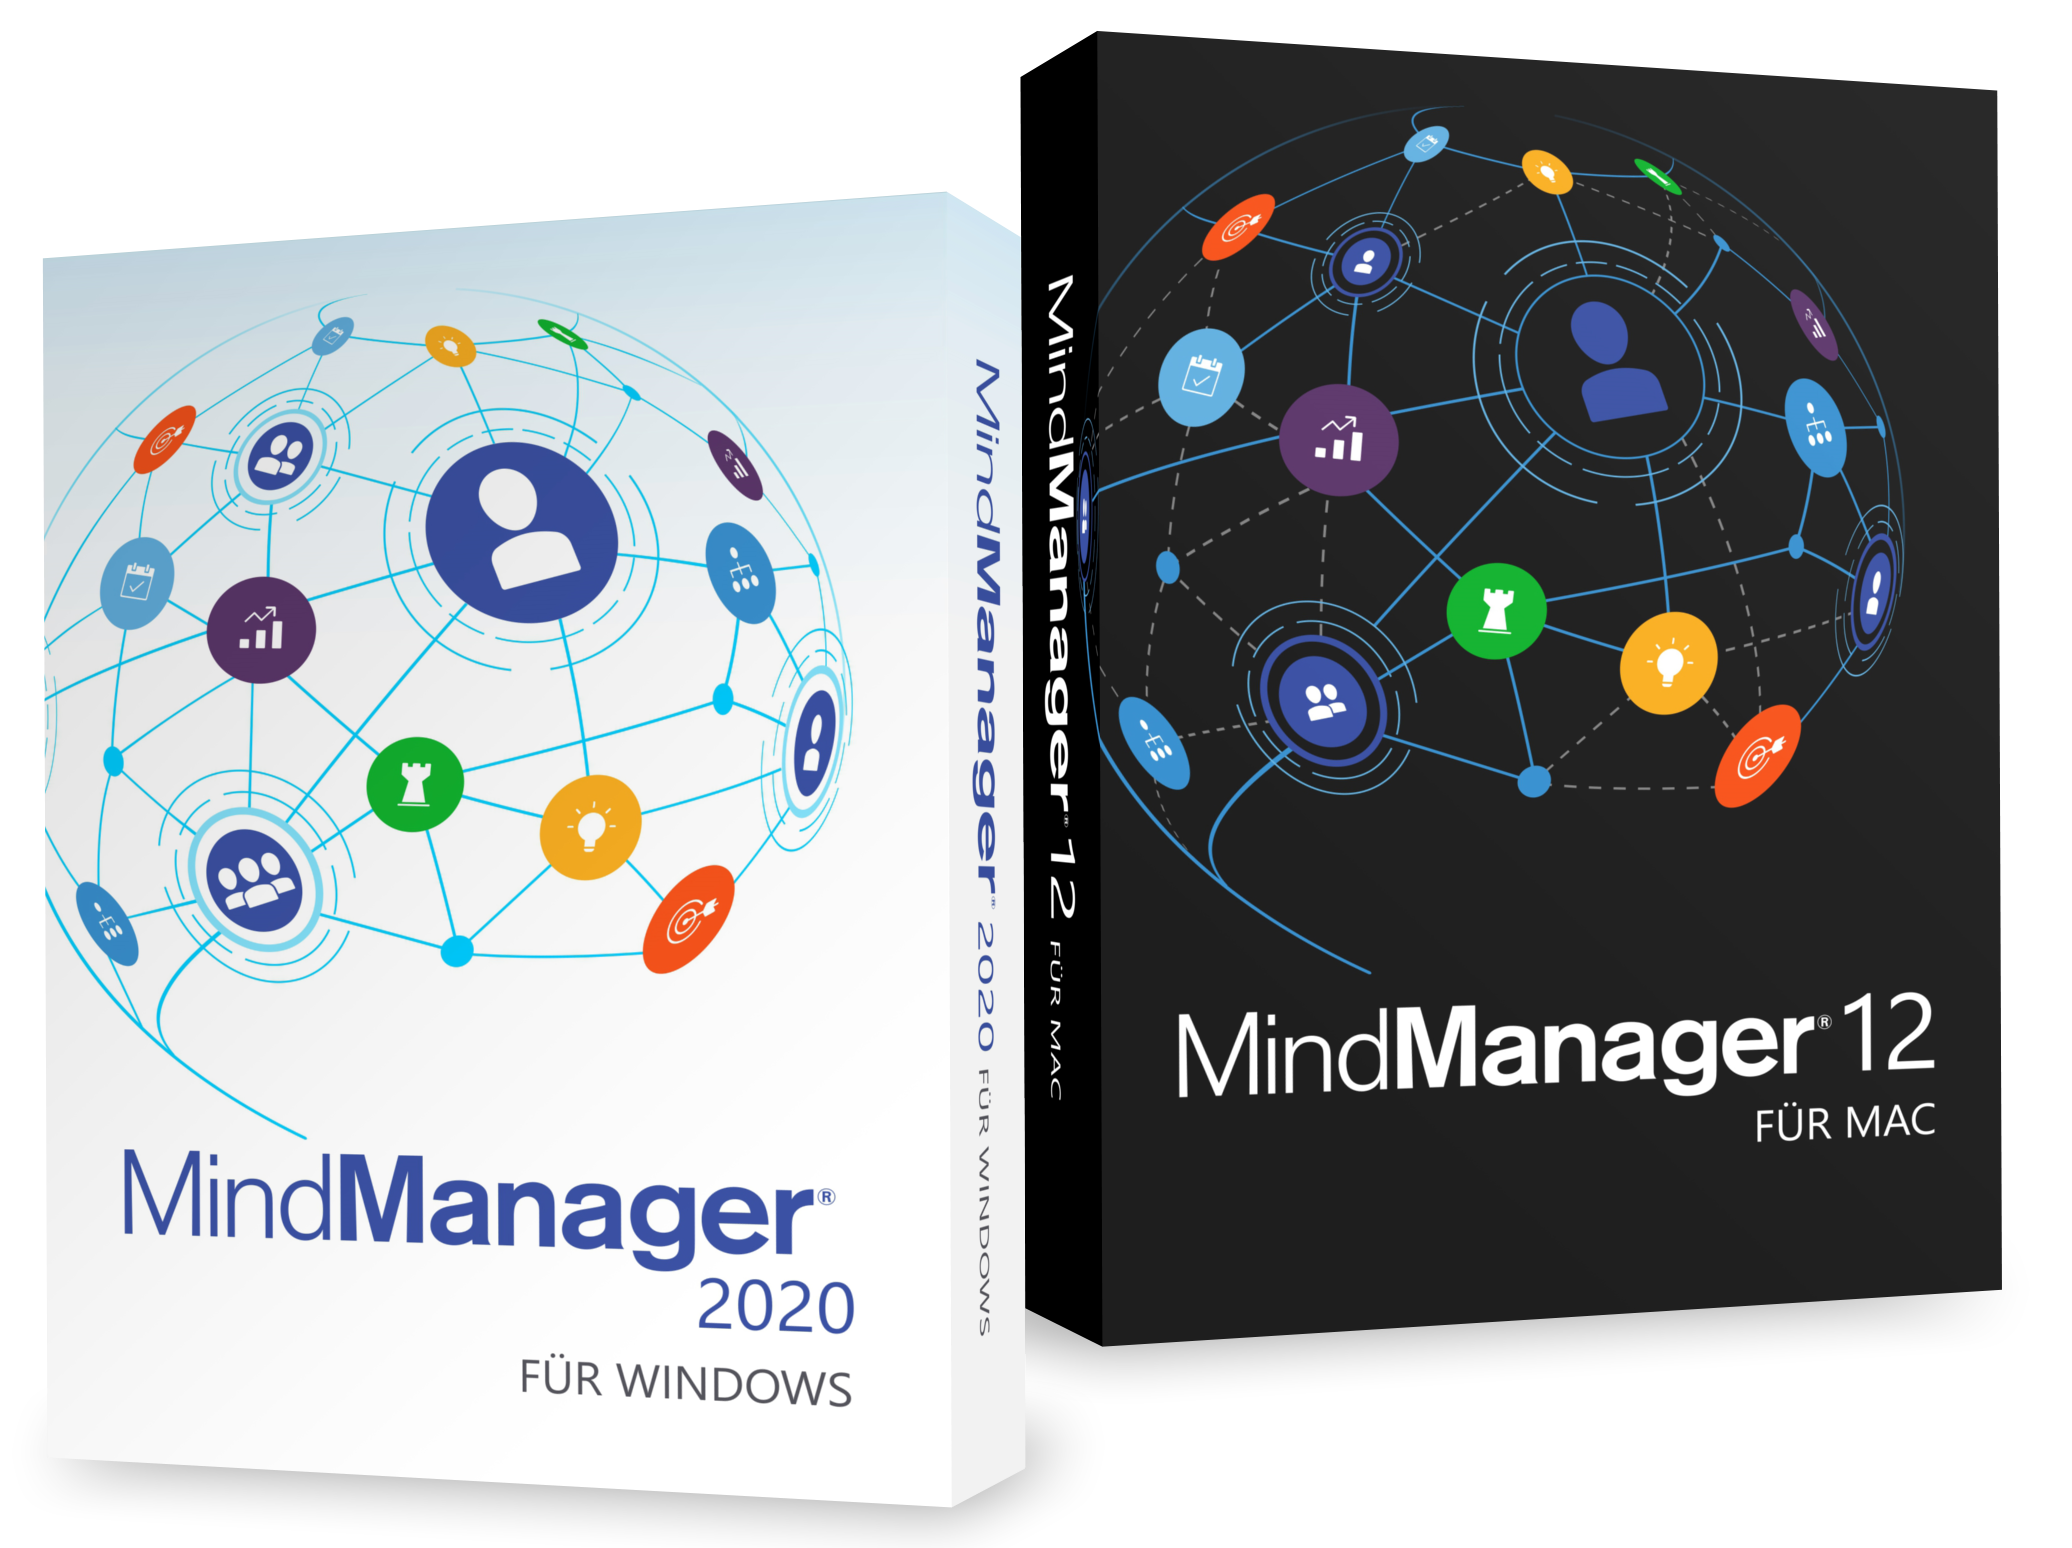 mindmanager-projektmanageement-aufgabenmanagement-megasoft-software-solution.png